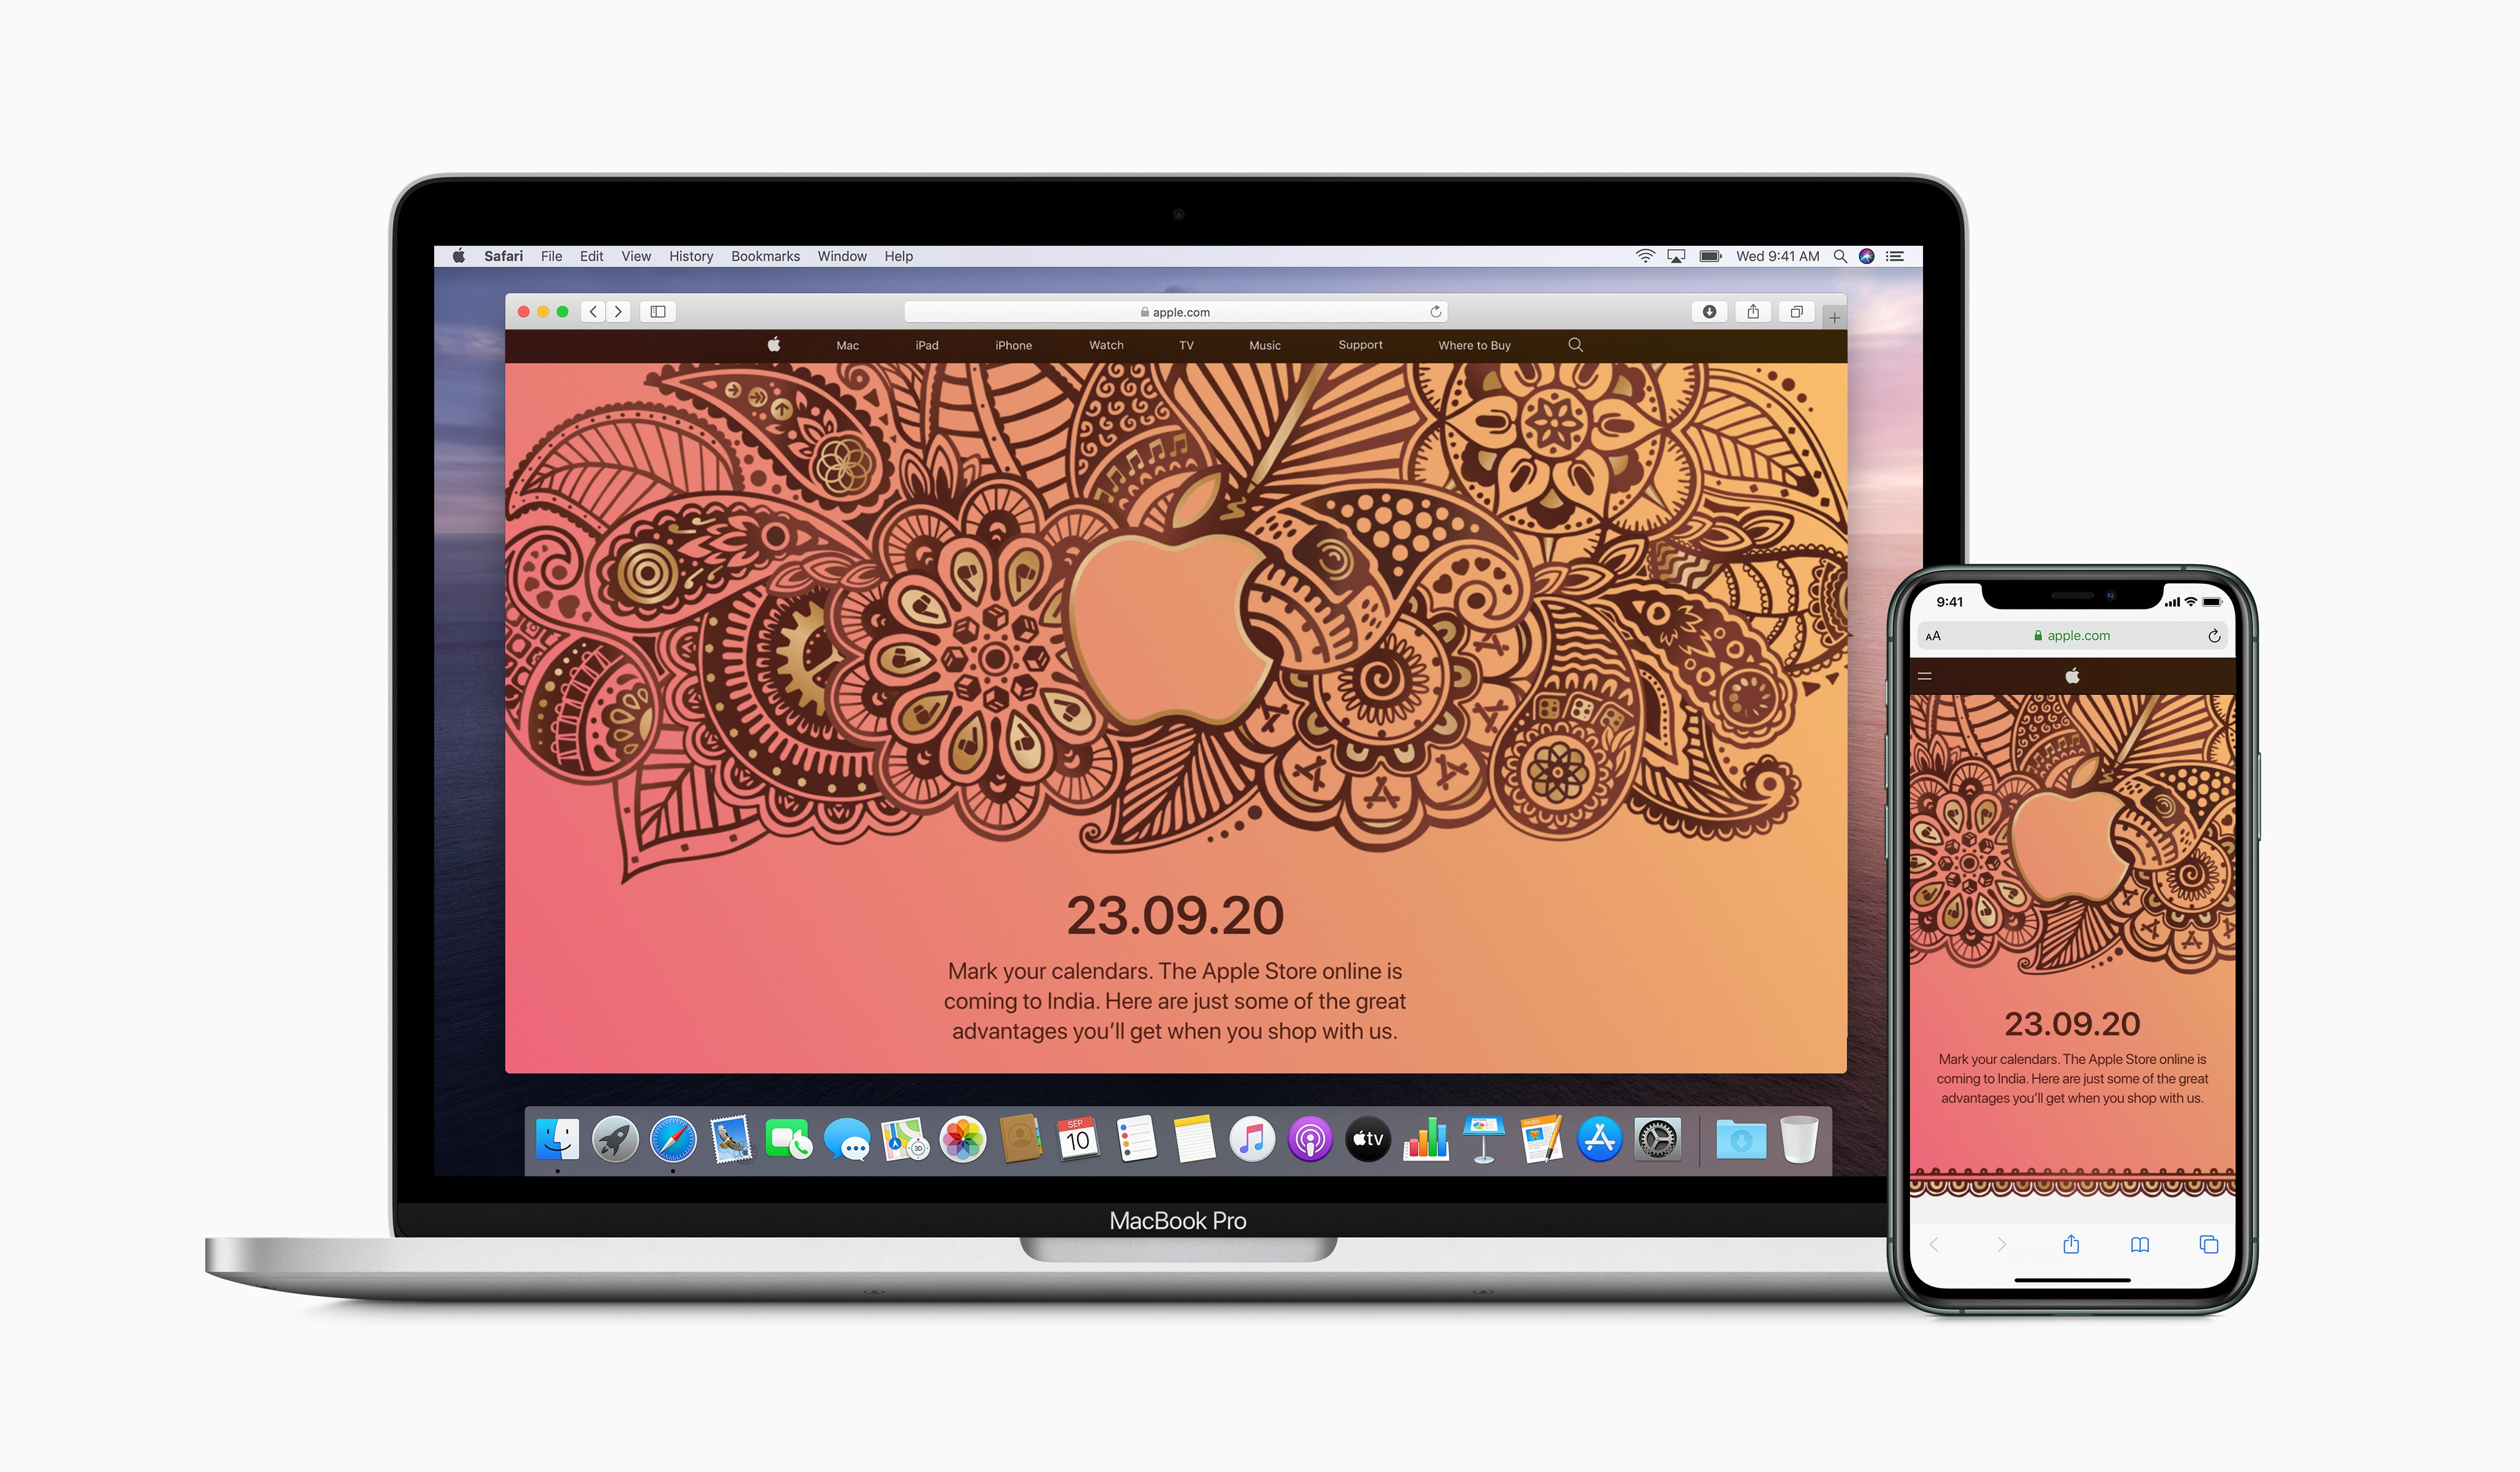 After Years of Setbacks, Apple Launches Online Sales in India This Week